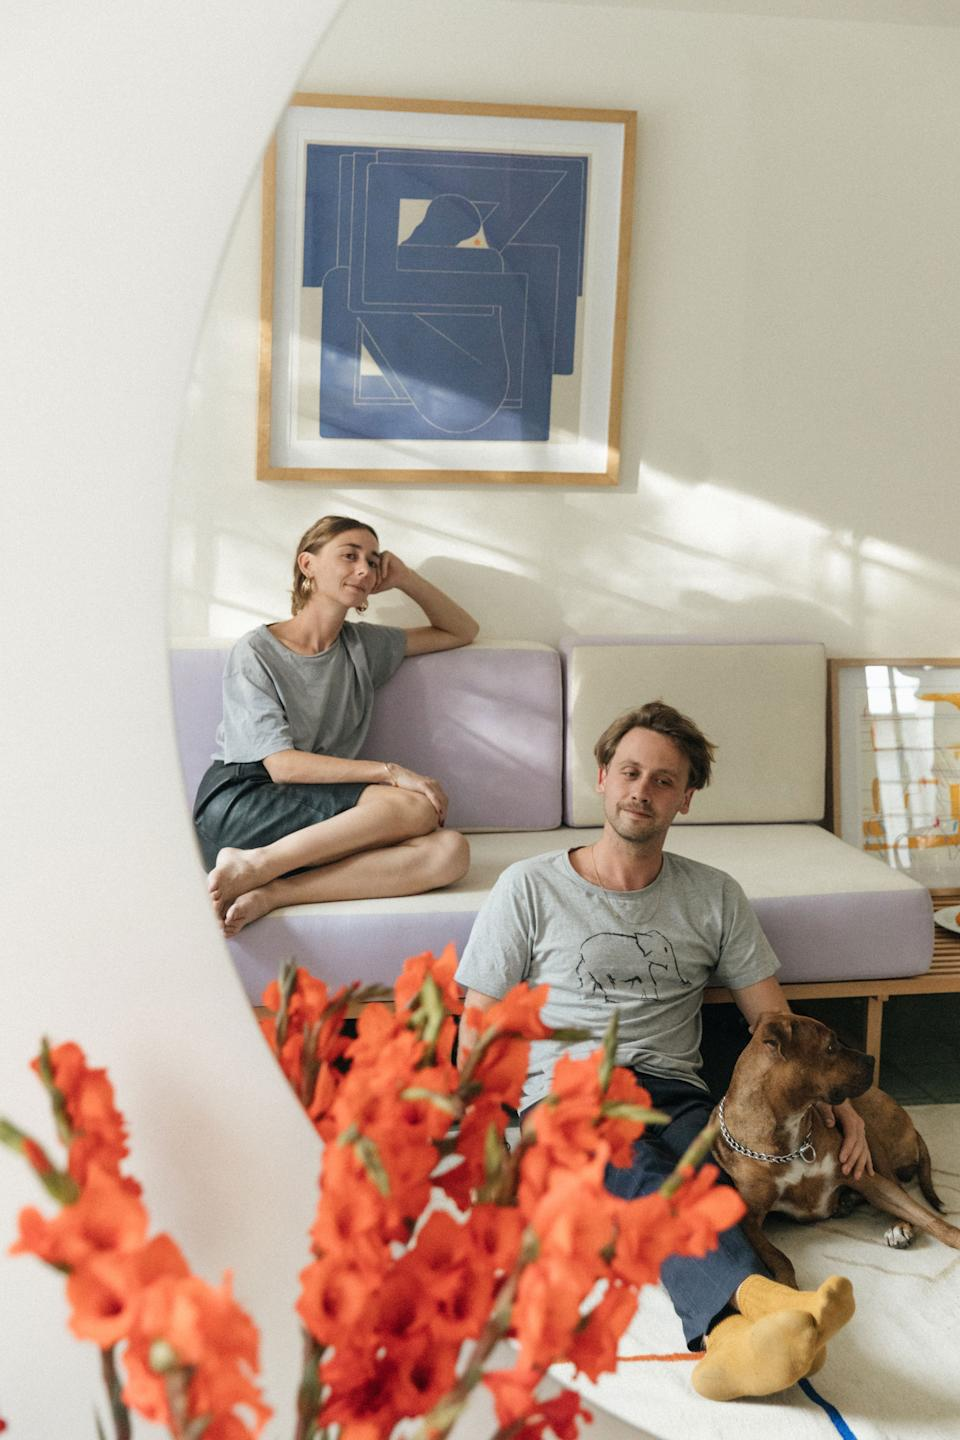 """<div class=""""caption""""> Aude Jan, Charles Gout, and their dog. </div>"""